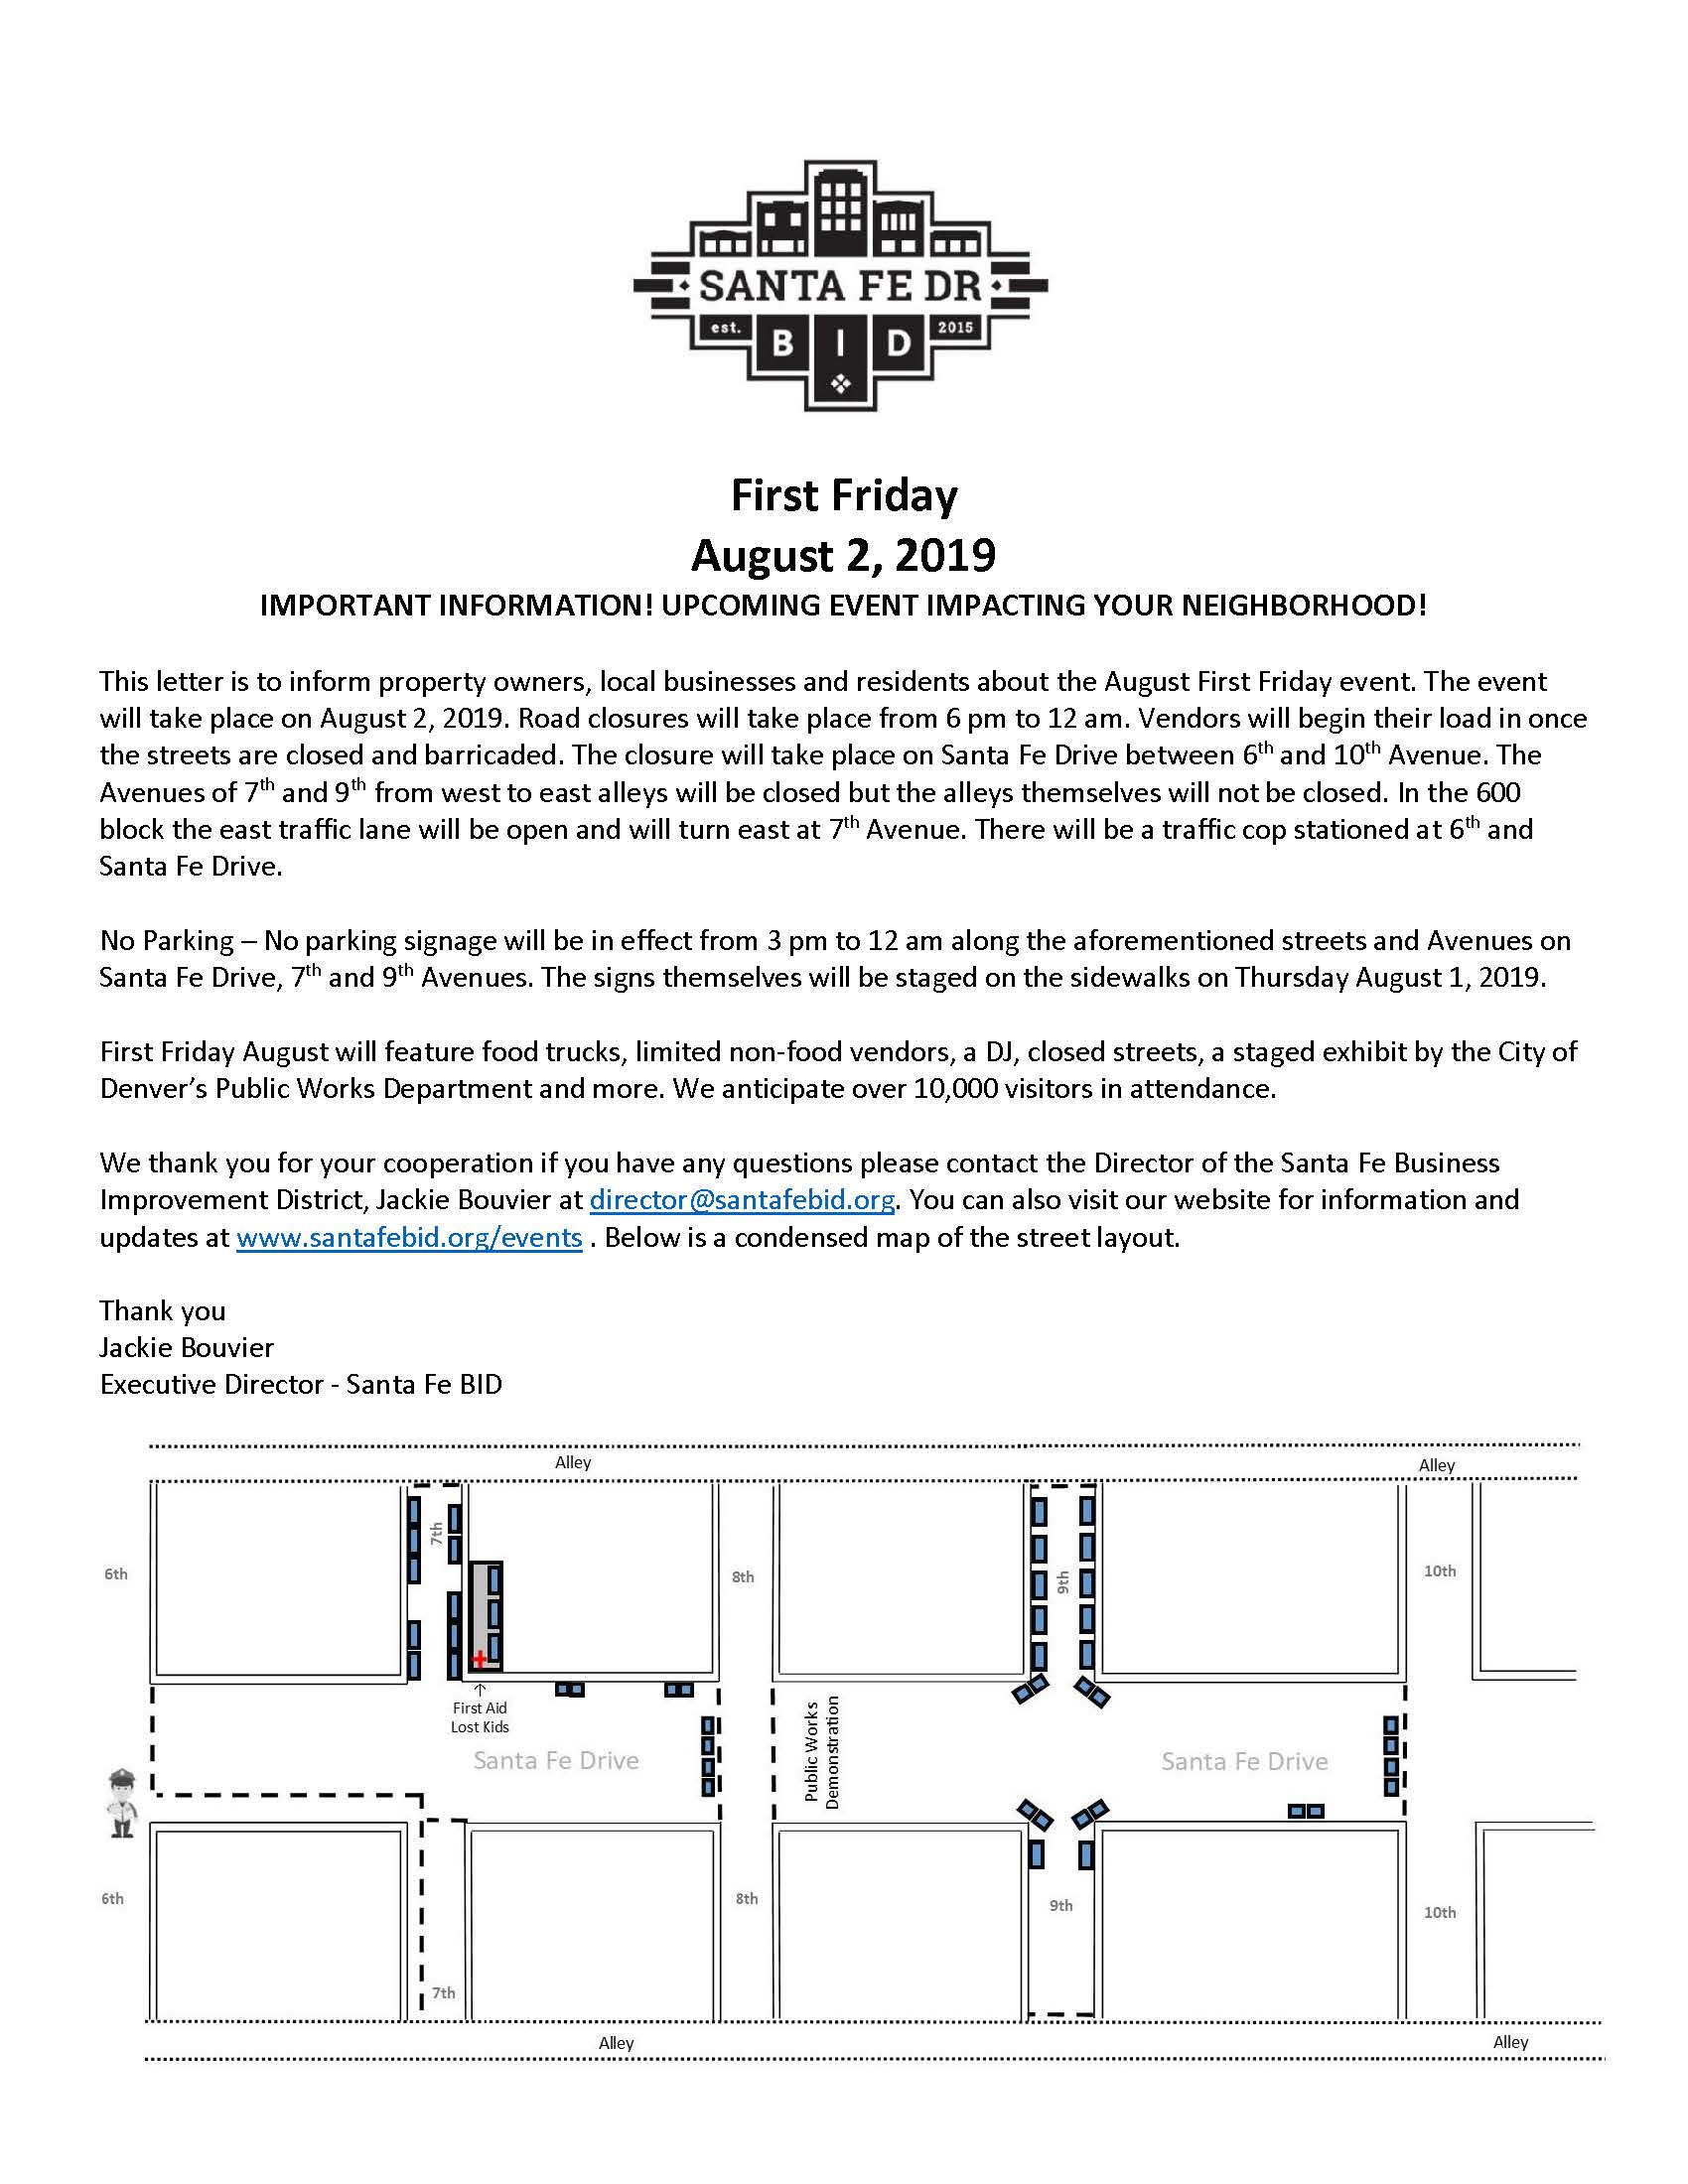 First Friday August 2 Neighborhood Notification.jpg